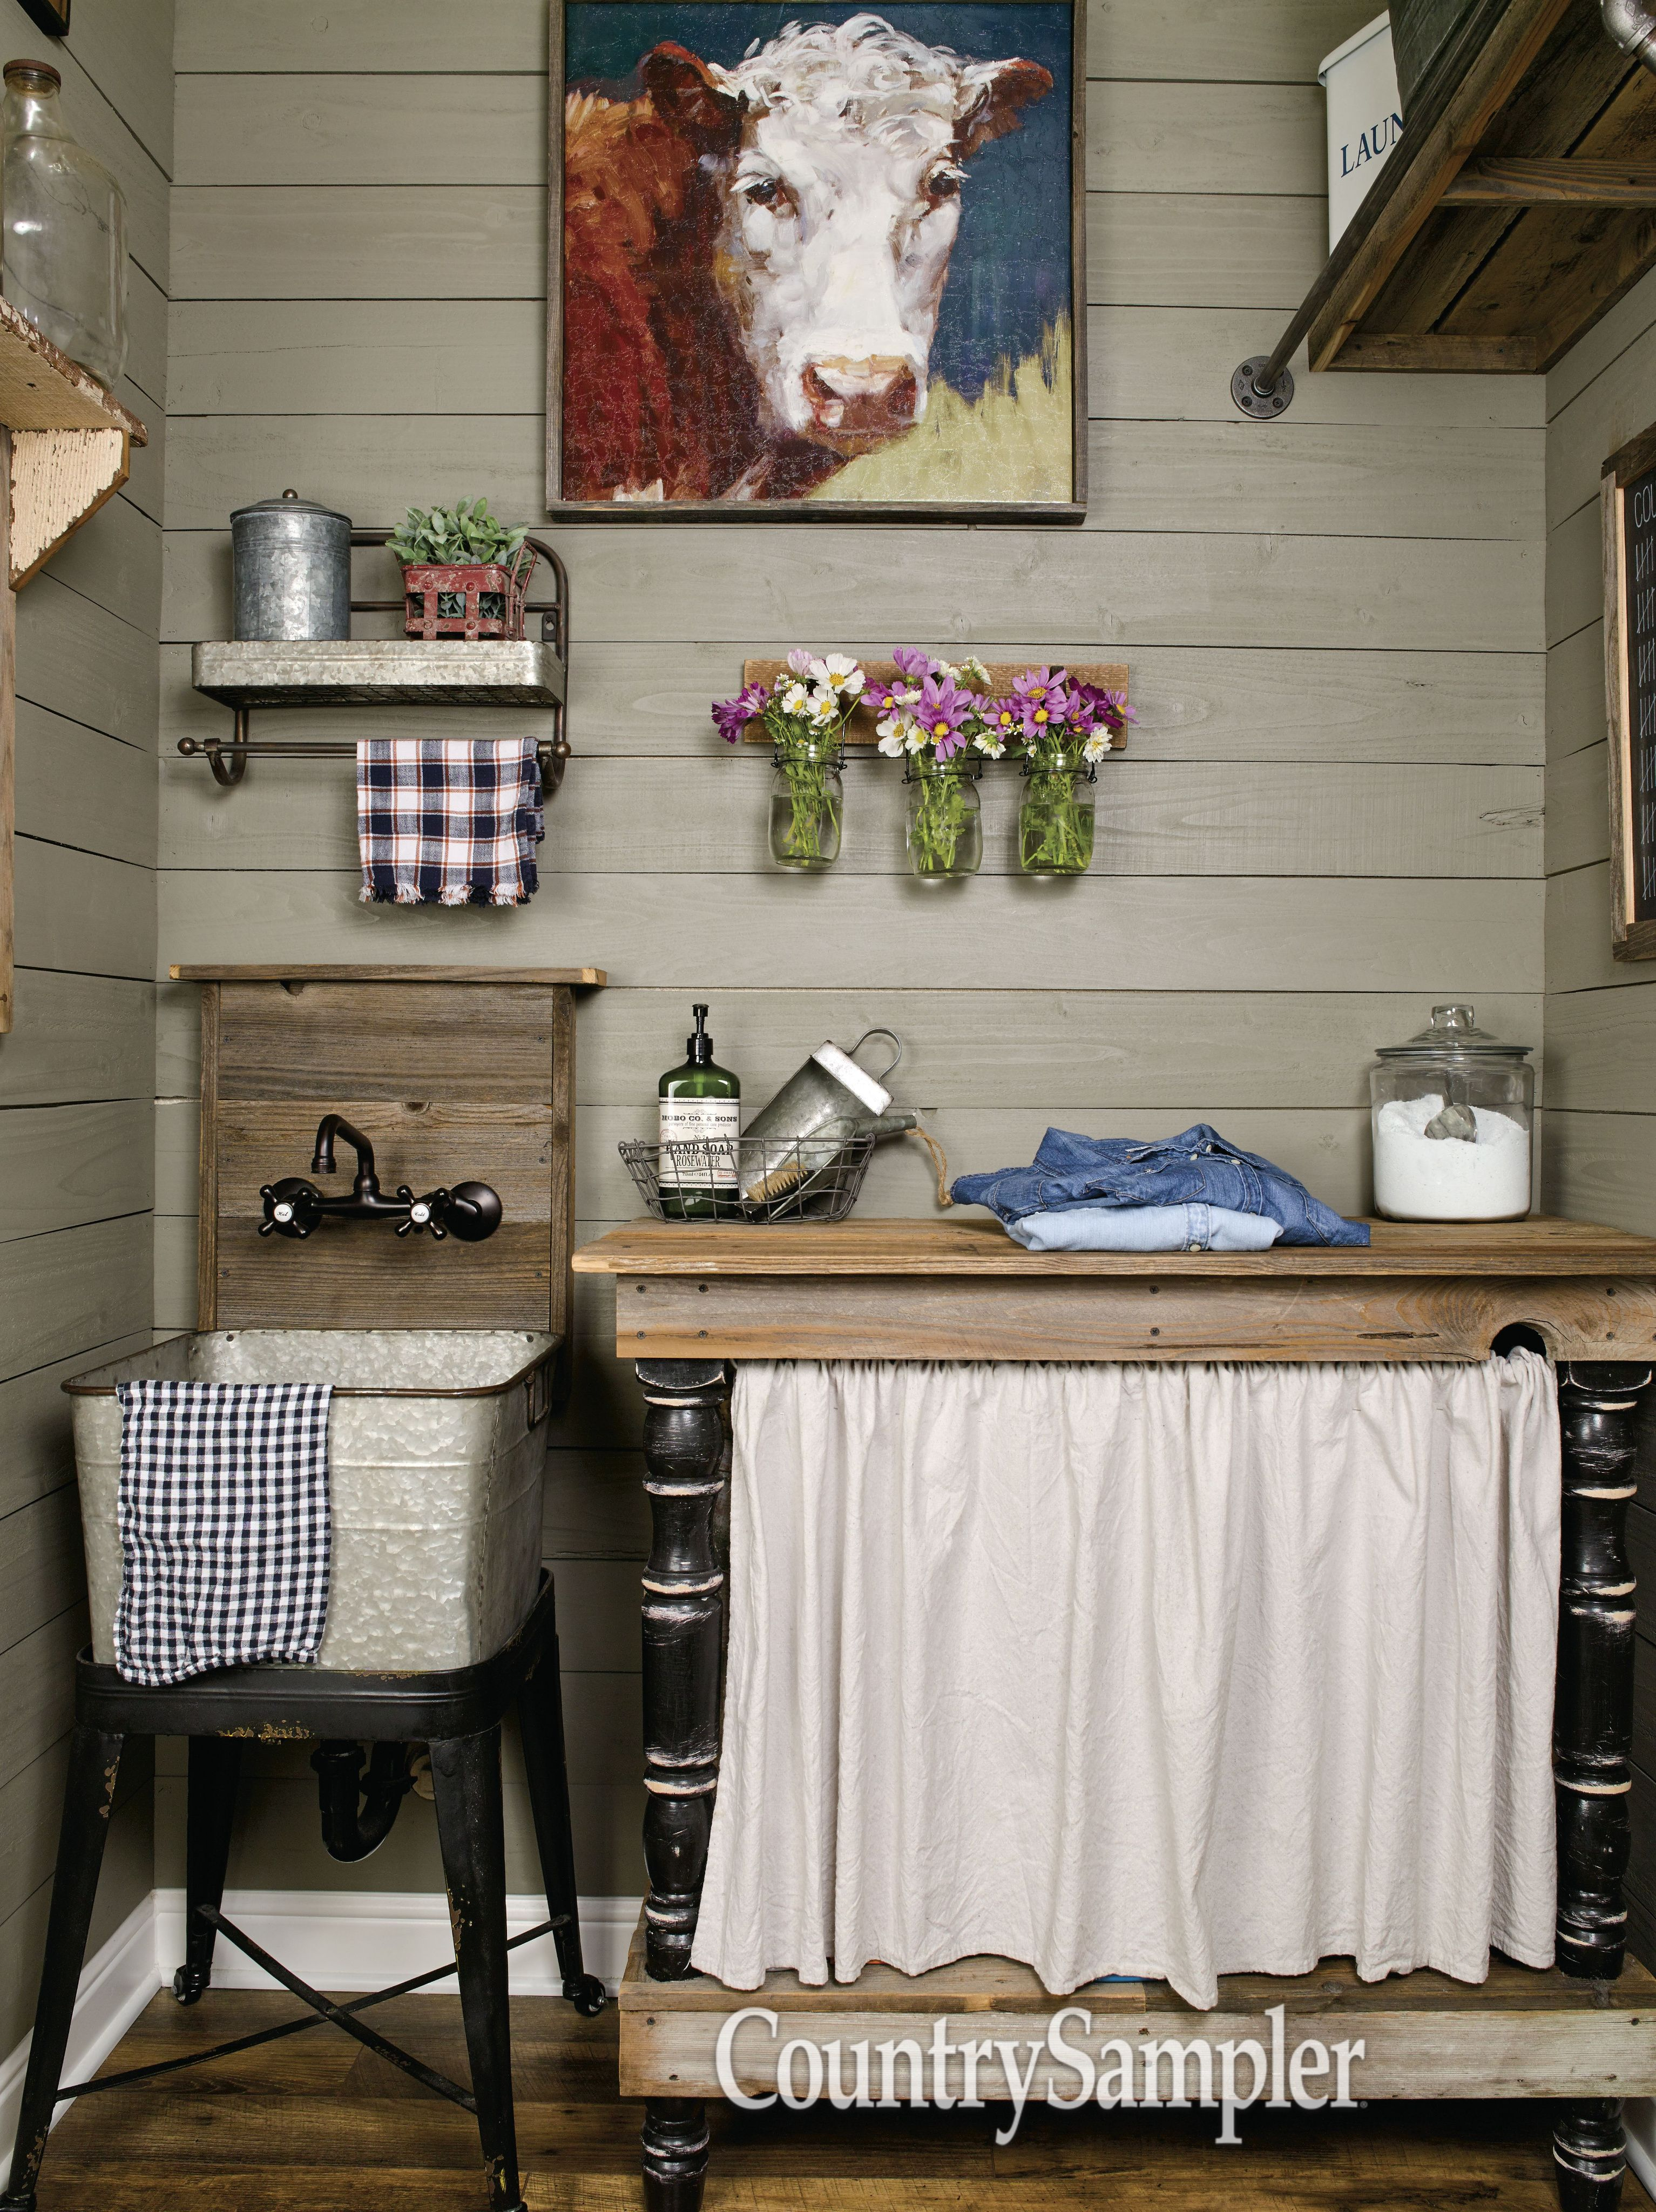 As Seen In The Article Living The Dream In The March 2018 Issue Of Country Sampler Living Room Furniture Layout Primitive Laundry Rooms Country Laundry Rooms